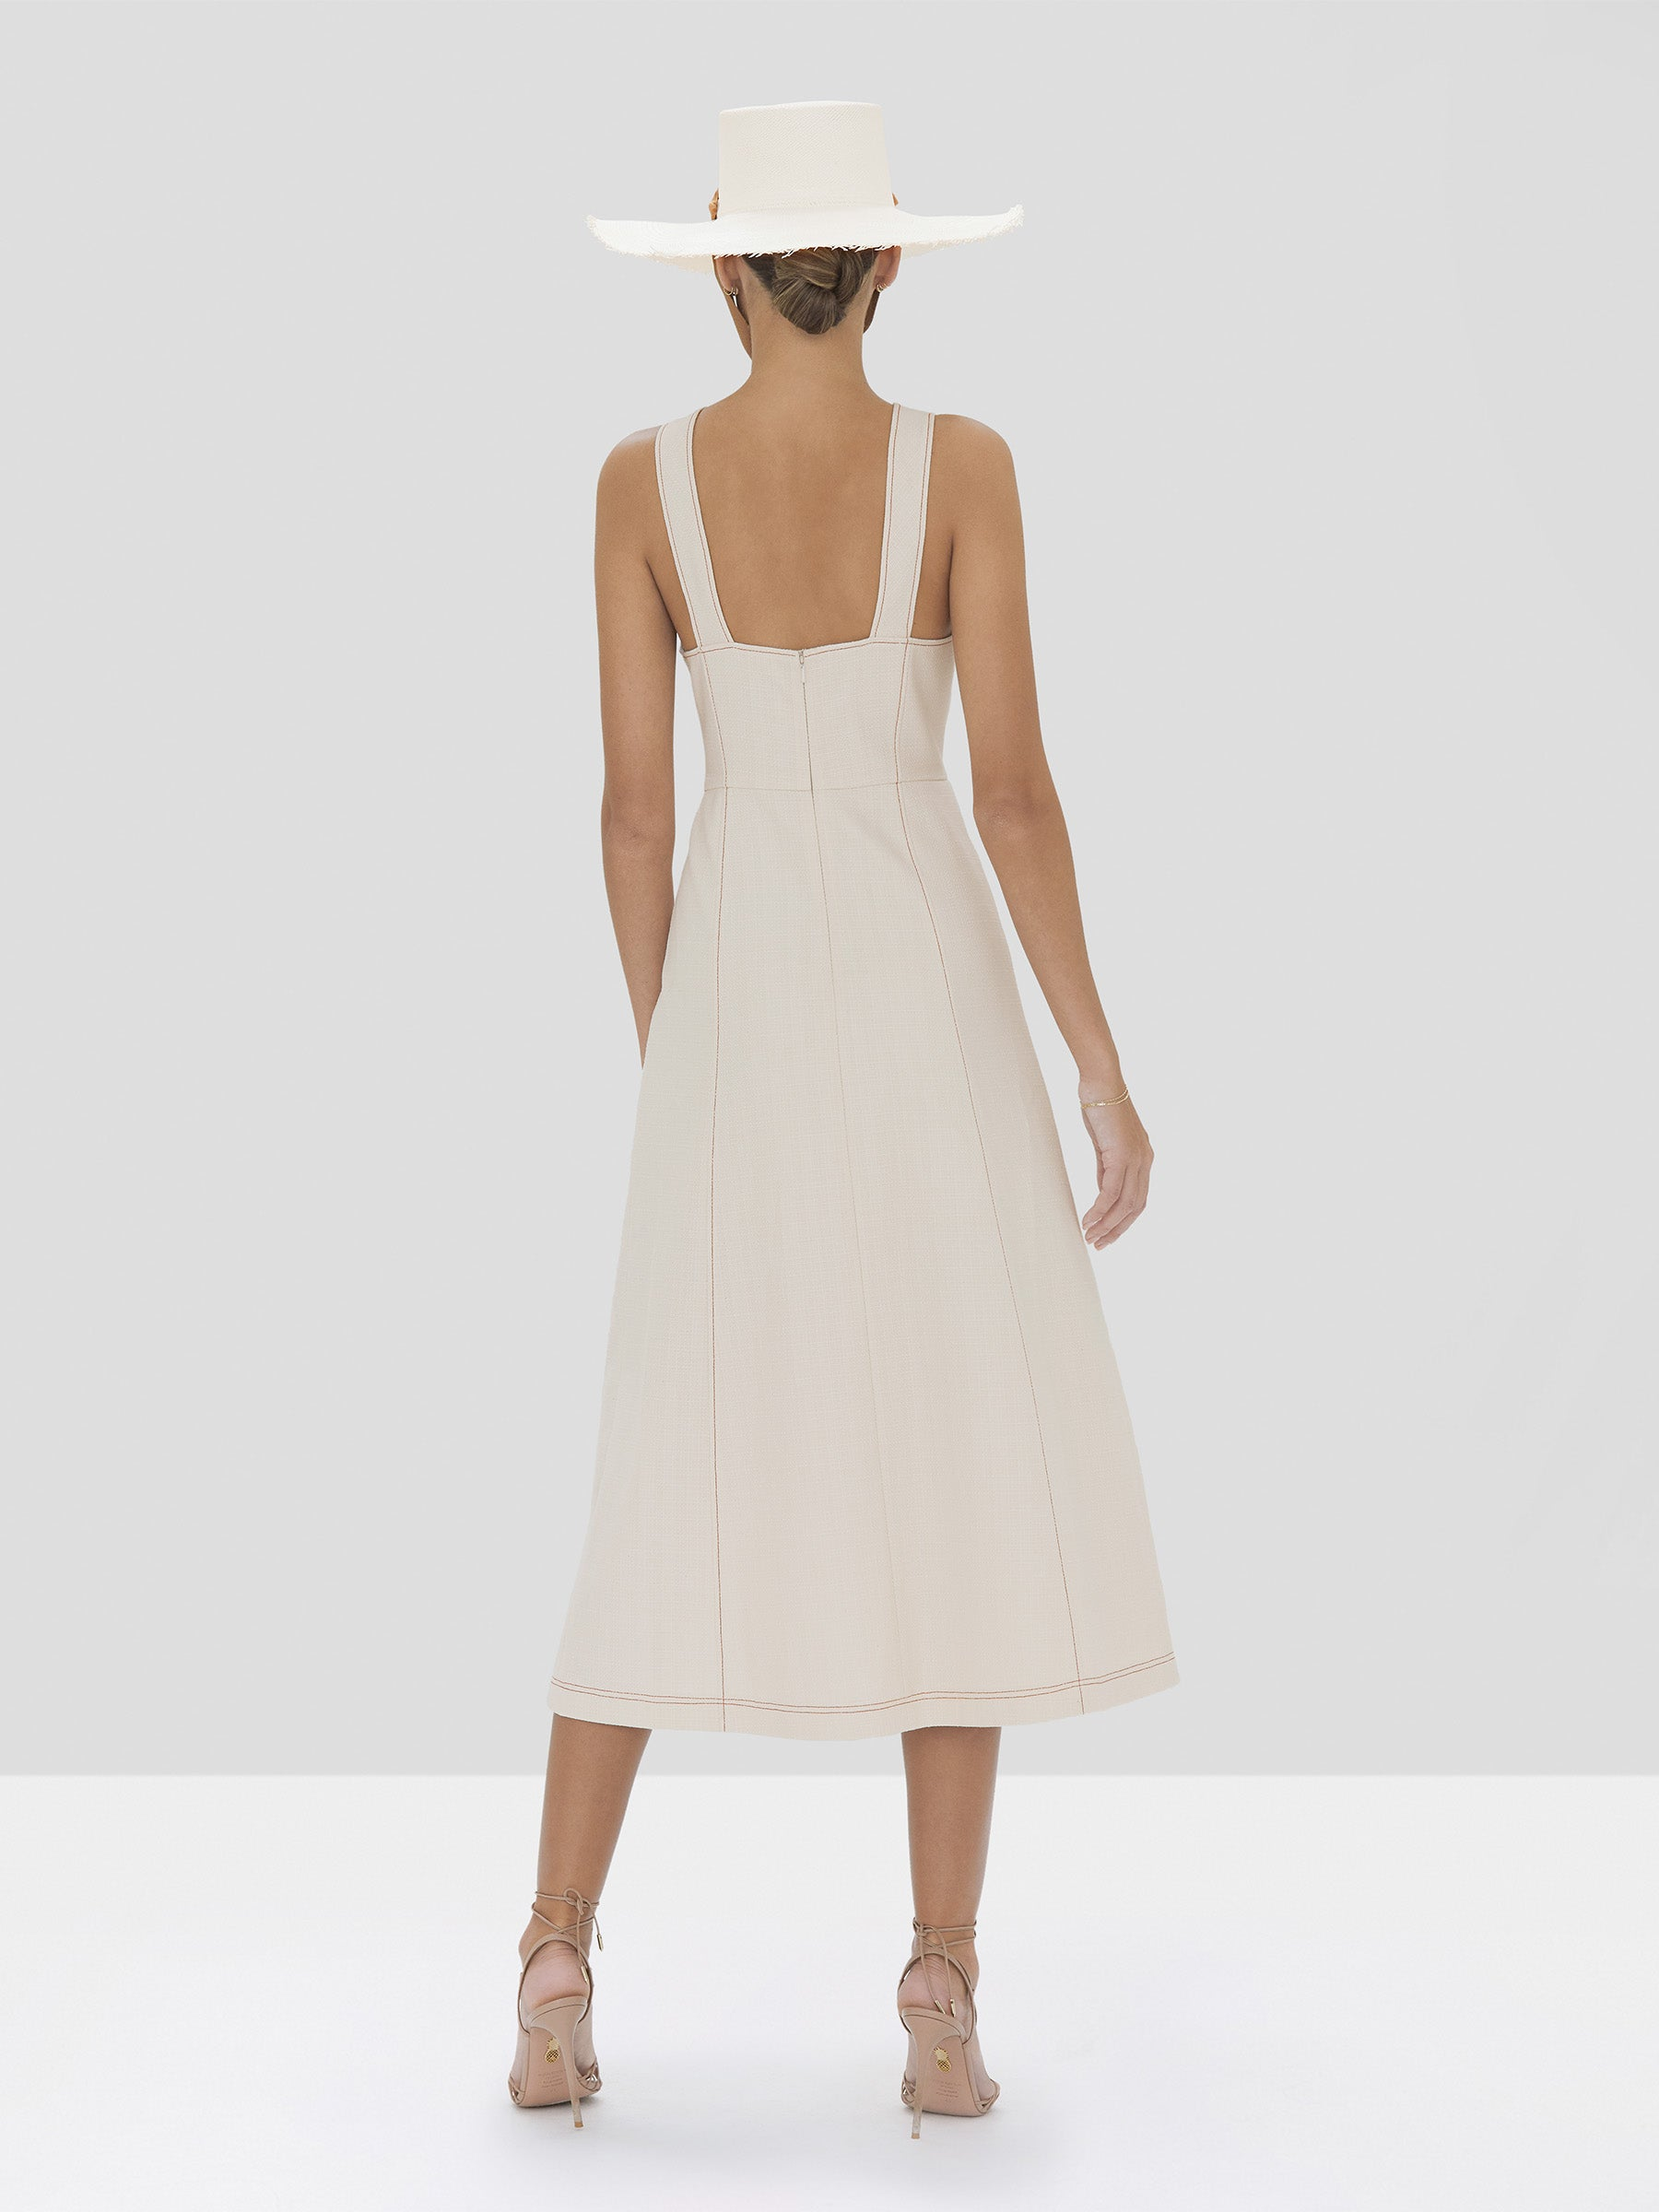 Alexis Ilan Dress in Ivory from Spring Summer 2020 Collection - Rear View